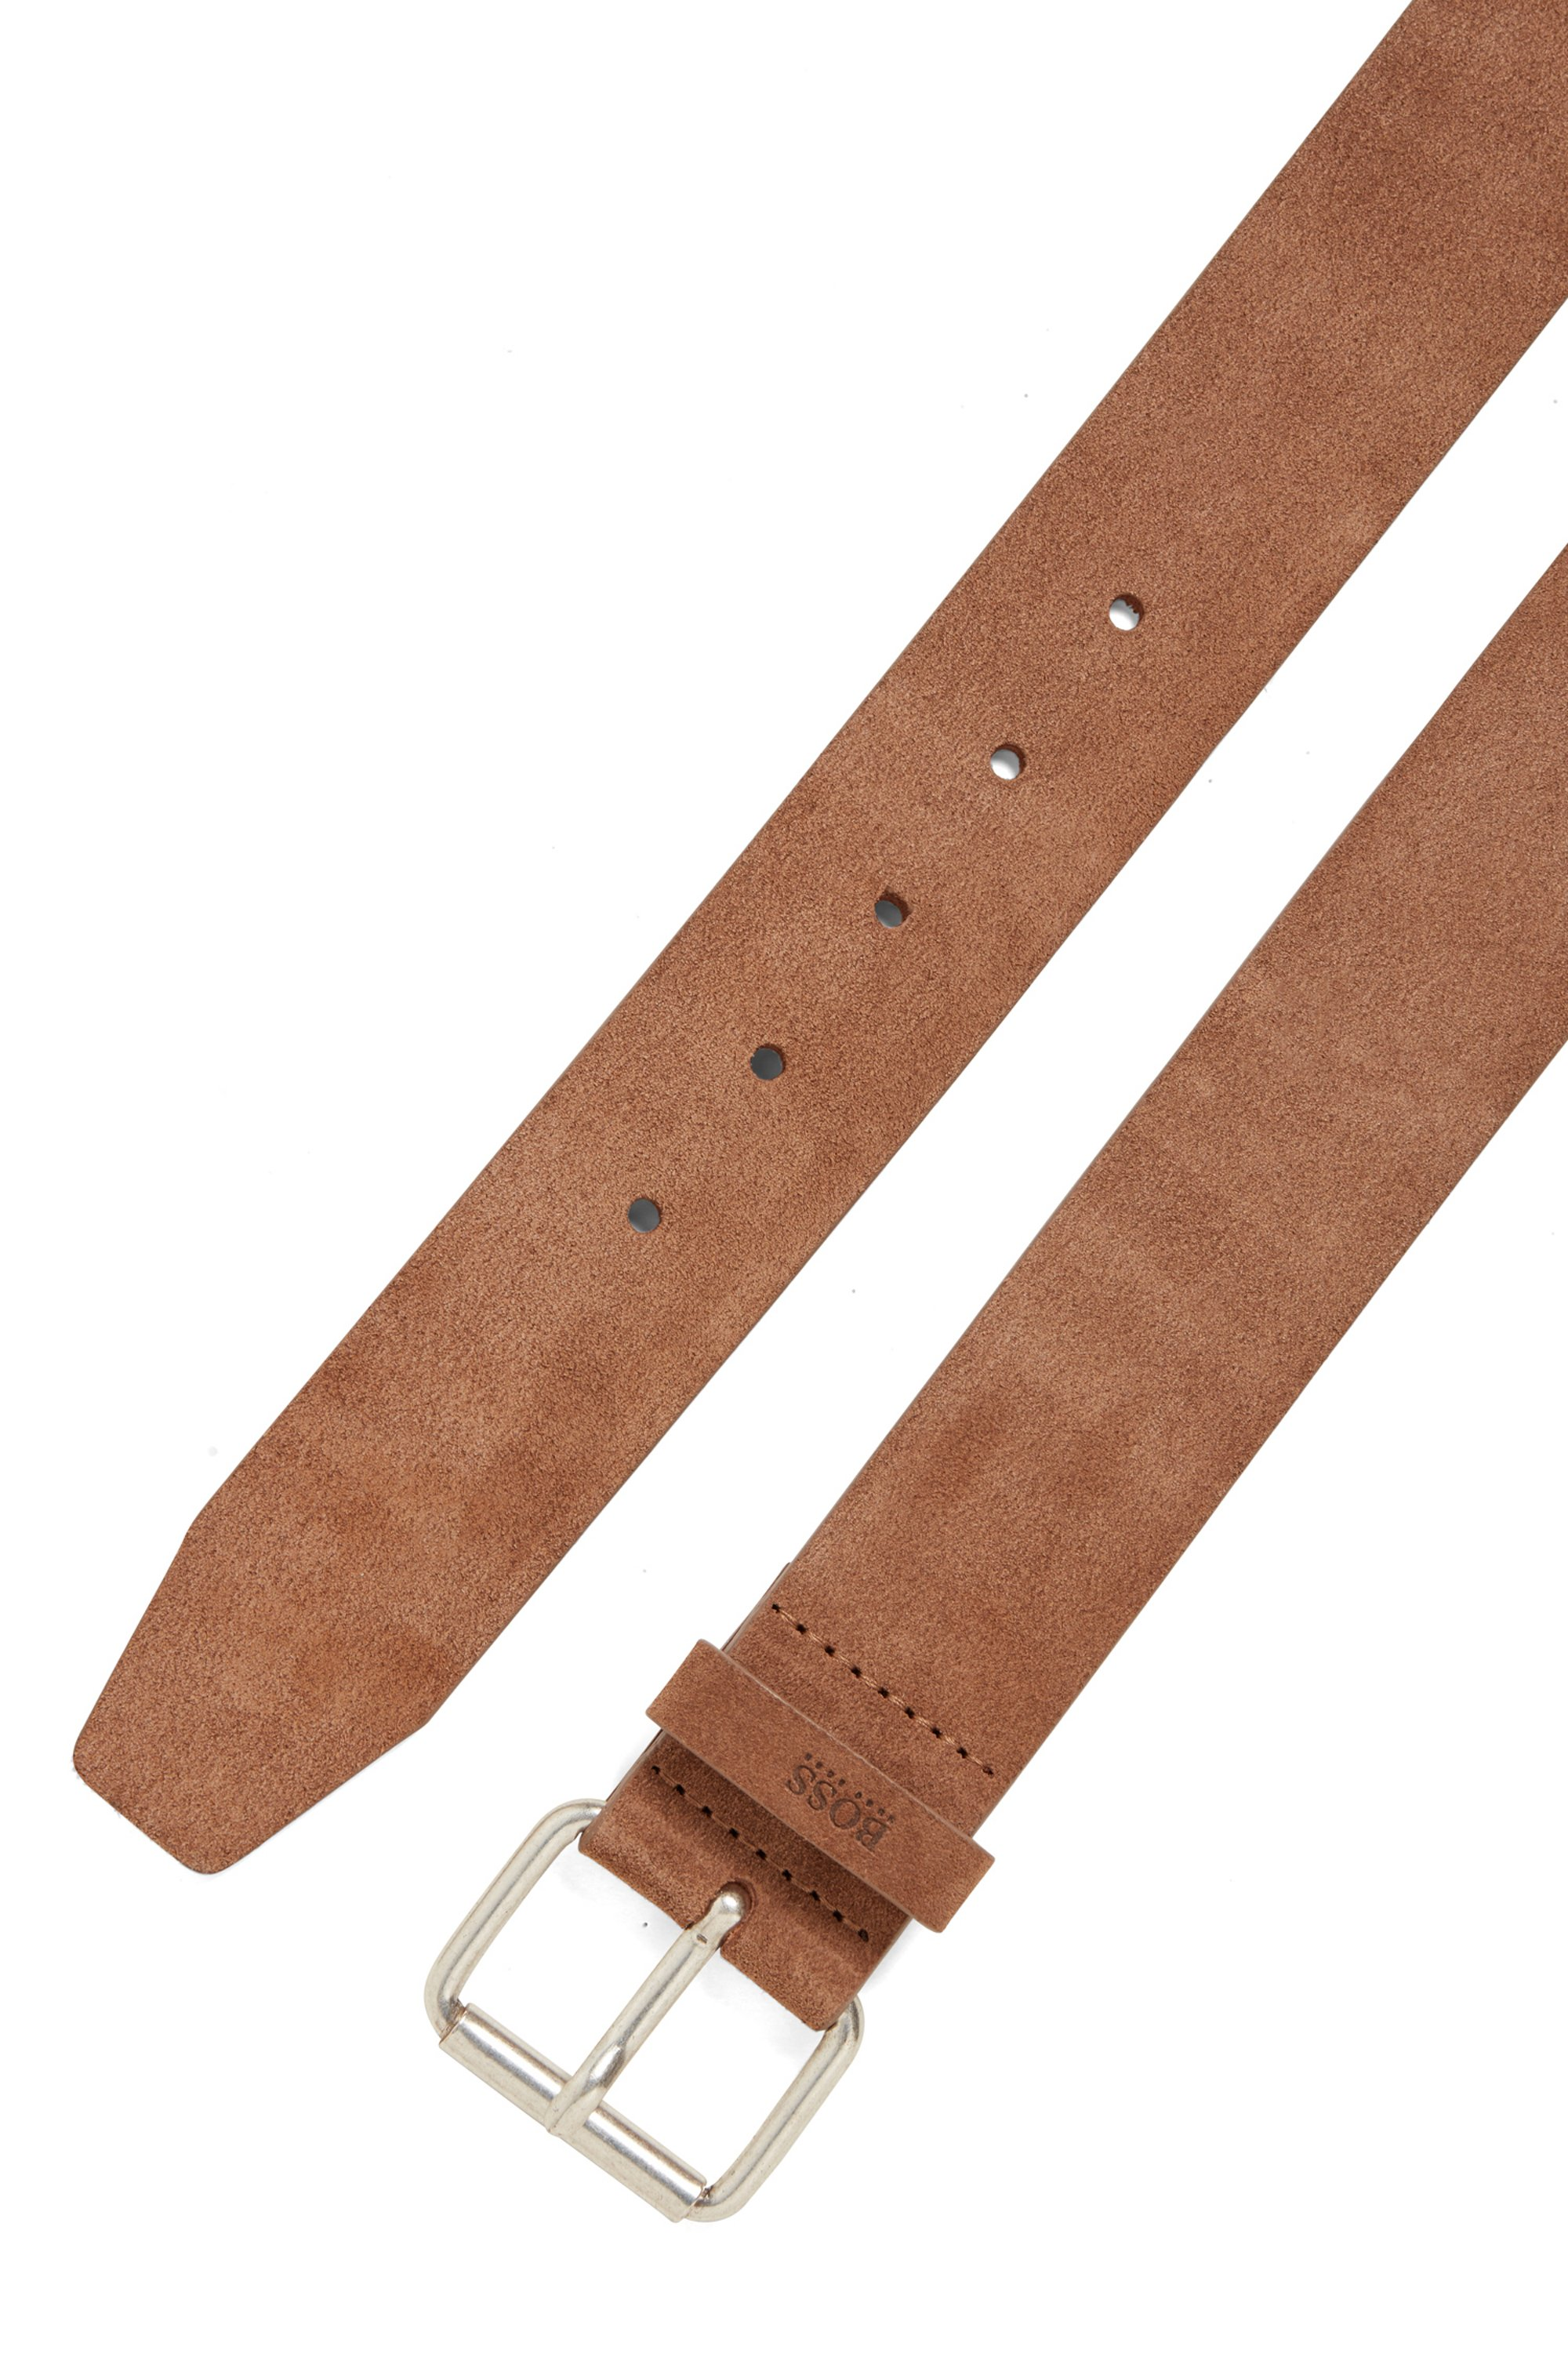 Suede belt with roller buckle and logo keeper